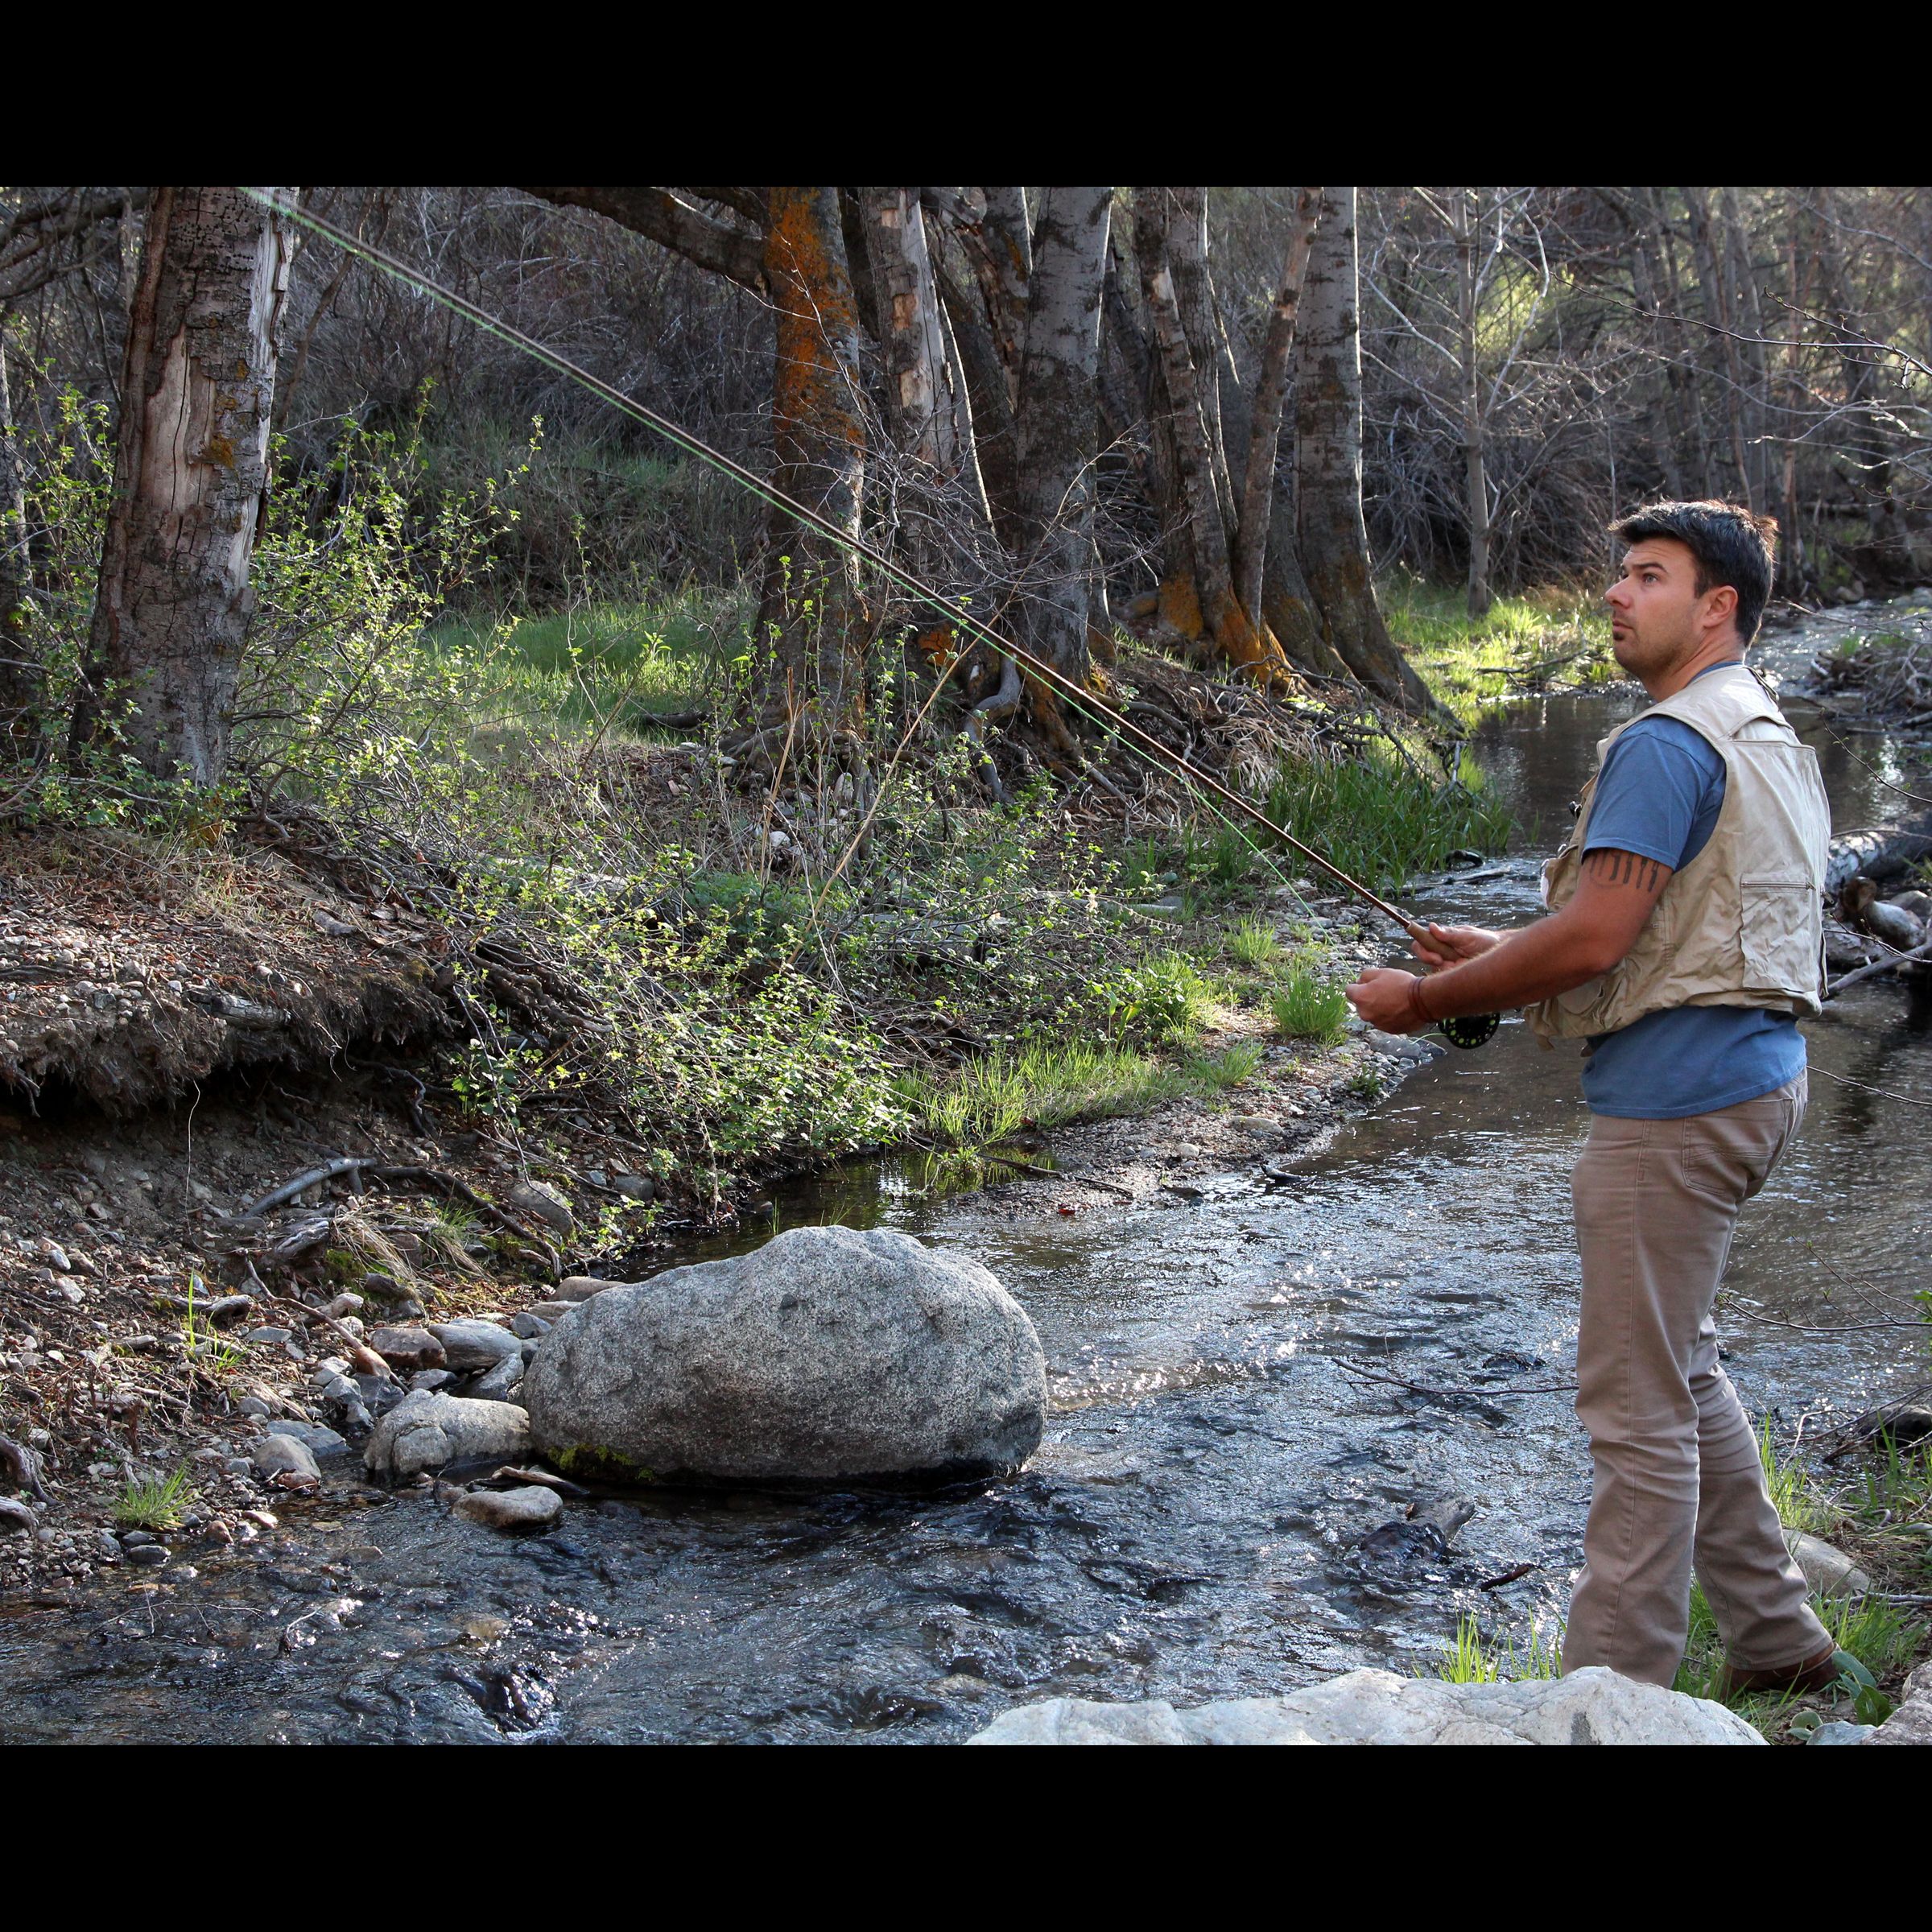 The headwaters fly fishing the santa ana river for Santa ana river lakes fishing